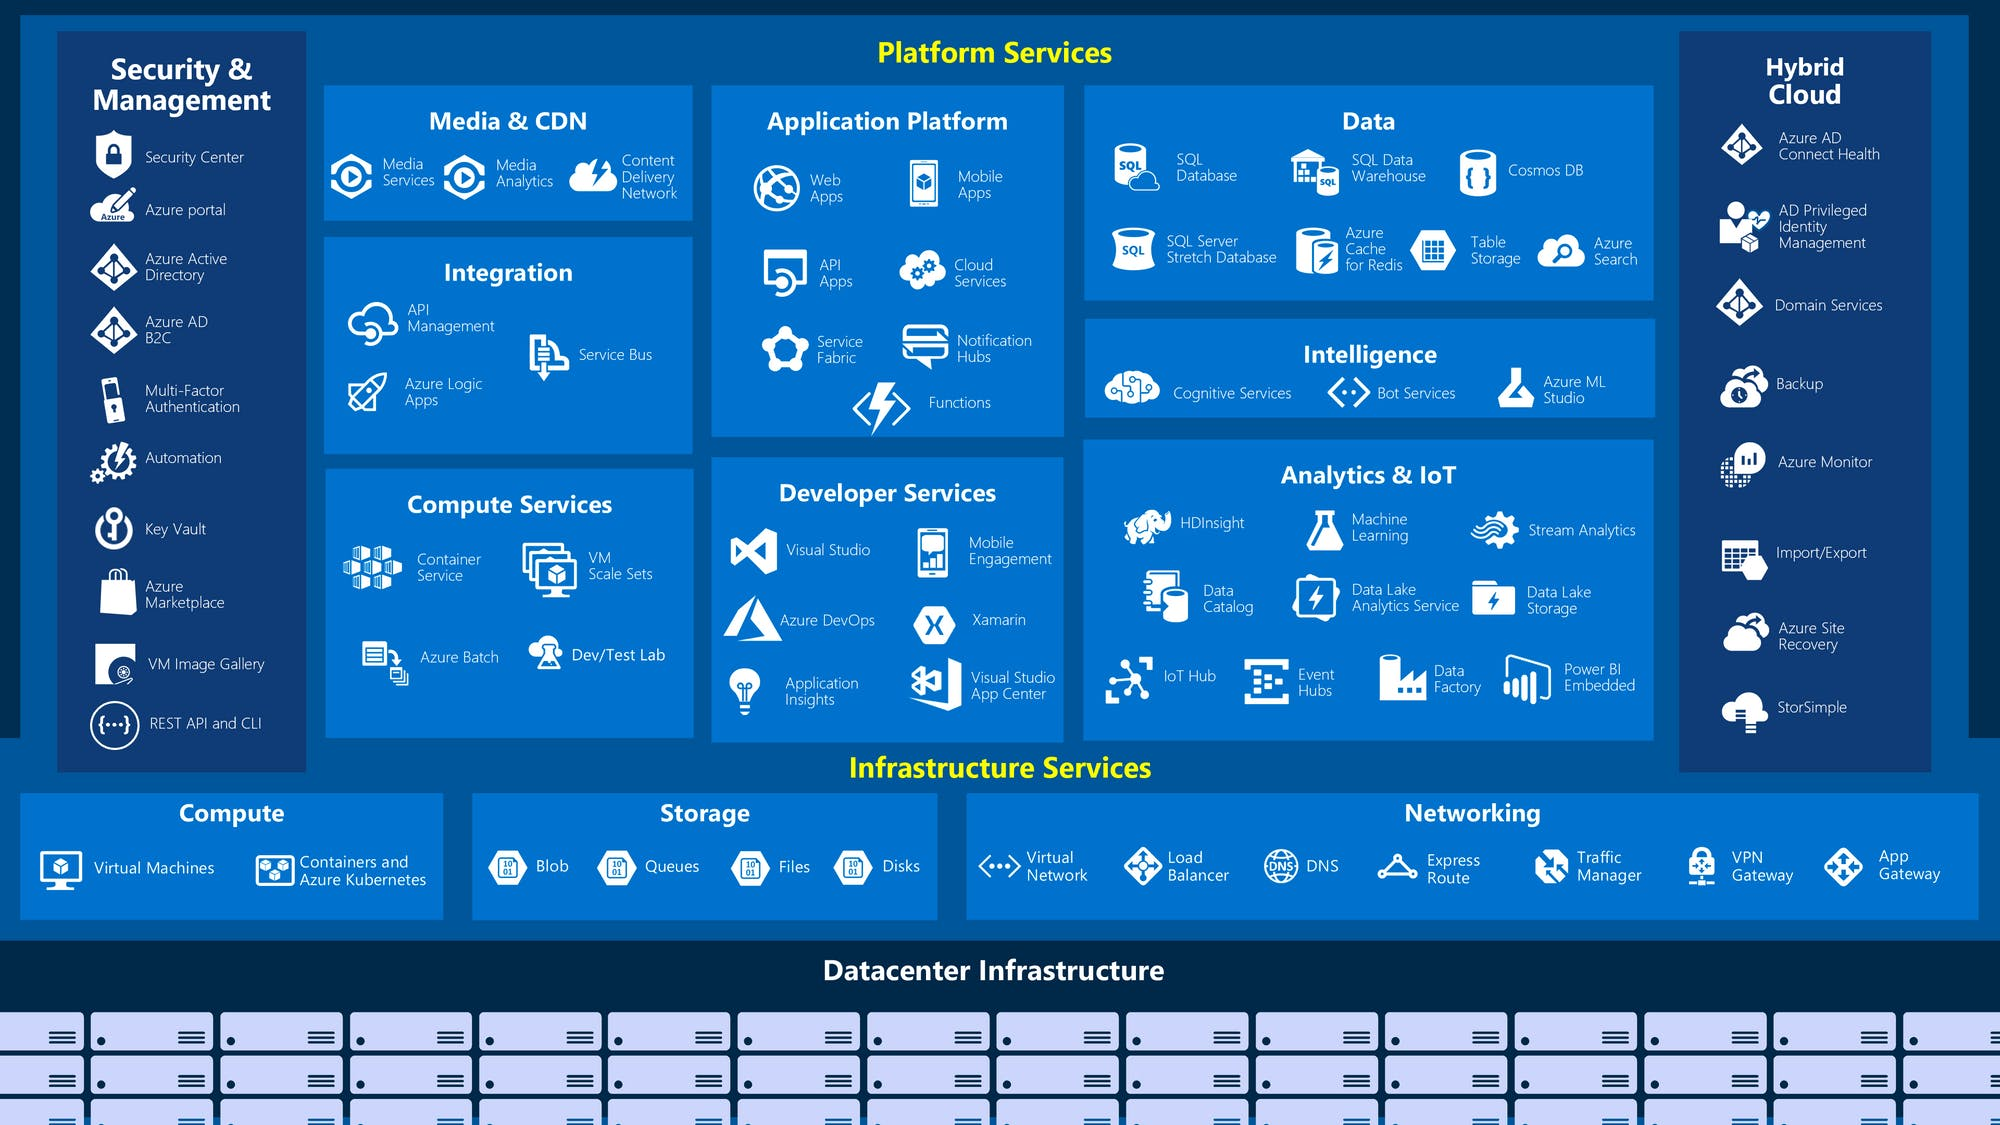 Big-picture view of the available services and features in Azure